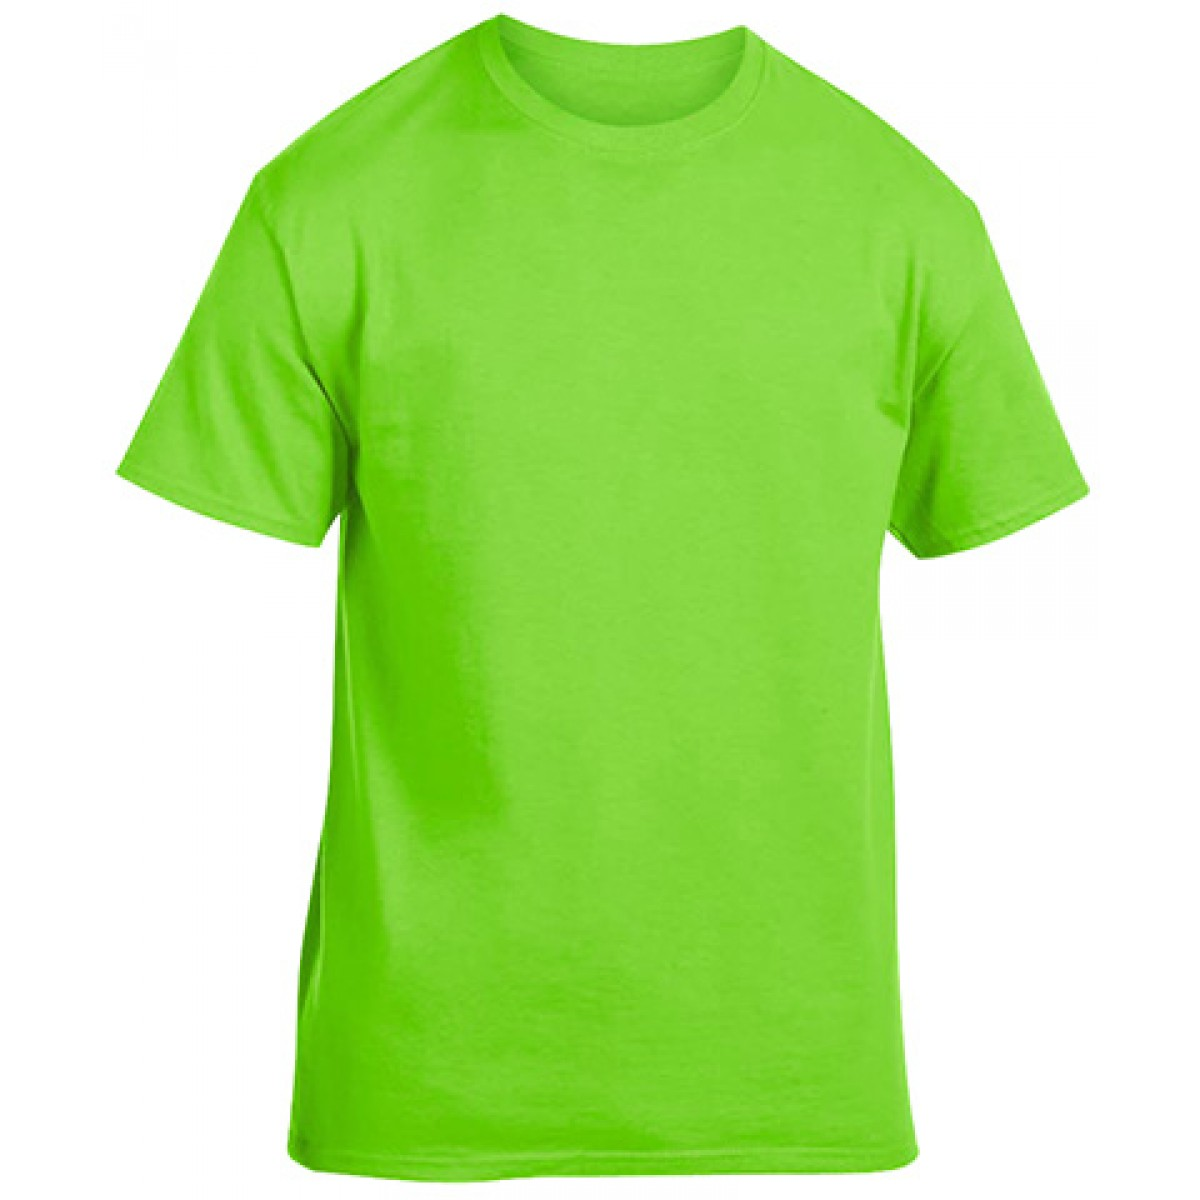 Soft 100% Cotton T-Shirt-Neon Green-M